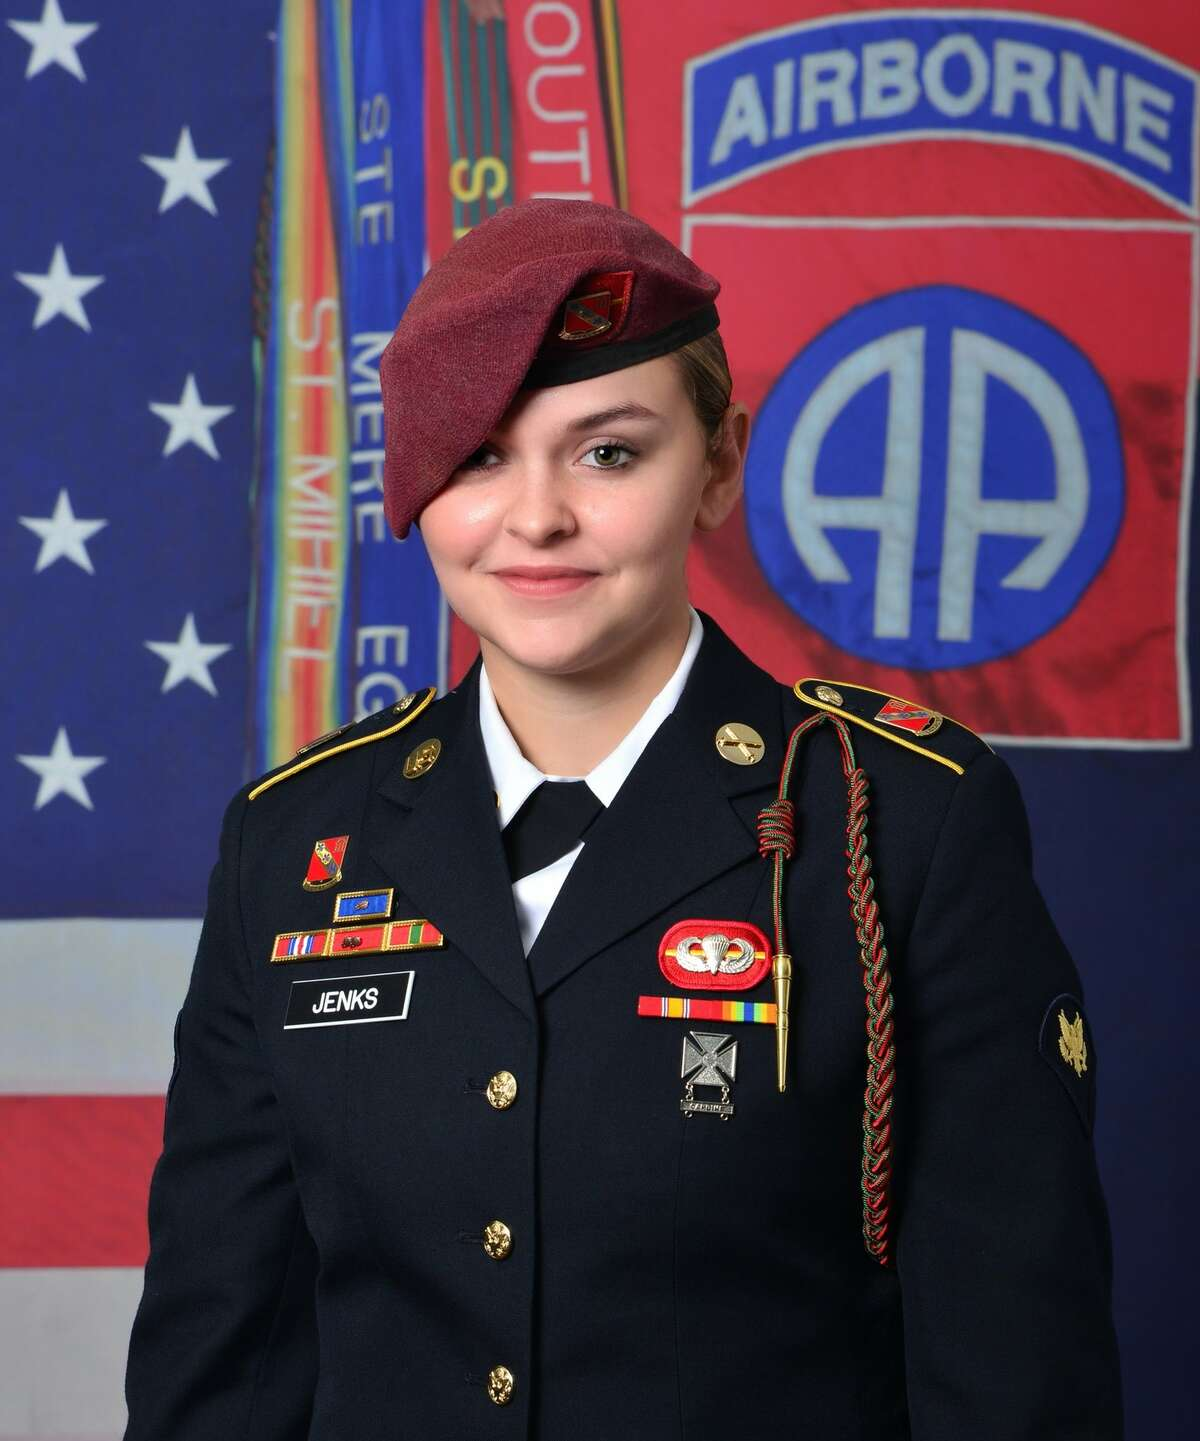 Spc. Abigail Jenks, 21, a Saratoga Springs High School graduate, was a member of the 82nd Airborne Division. She died during a static-line jump at Fort Bragg, N.C. Monday, April 19, 2021.